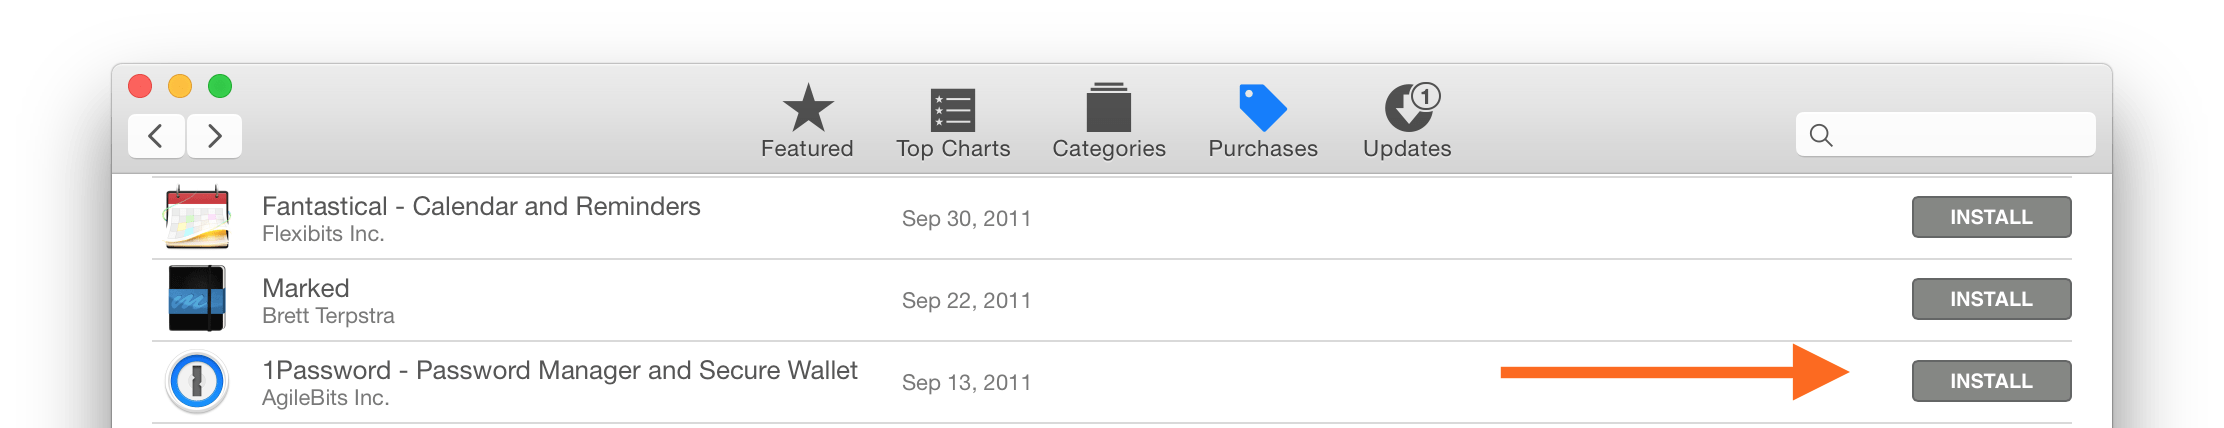 Purchases tab in the Mac App Store